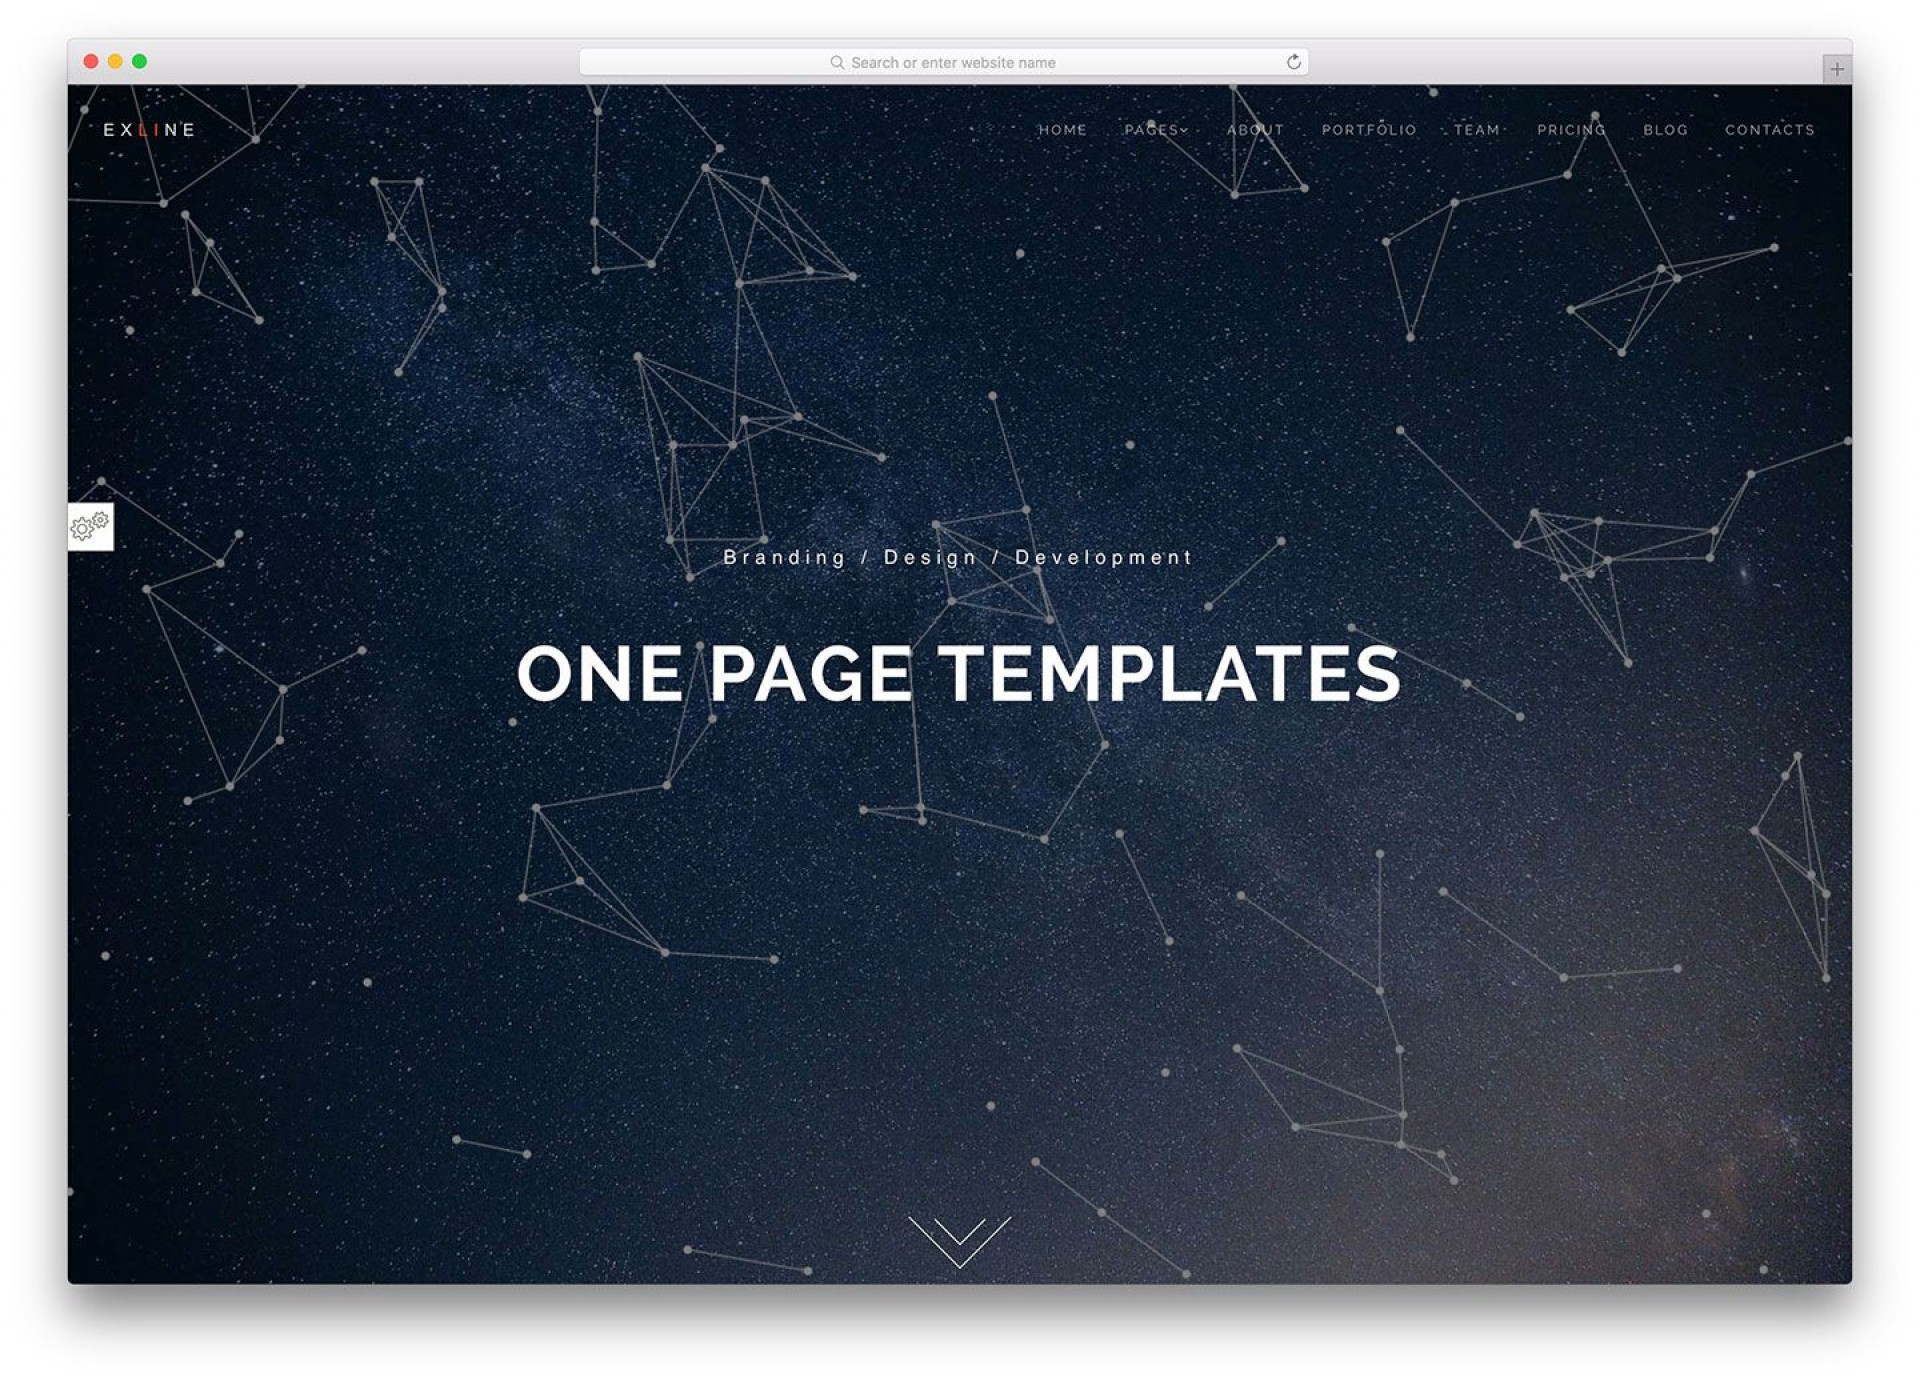 005 Impressive One Page Website Html Template Free Download Image  Cs Simple With Responsive1920